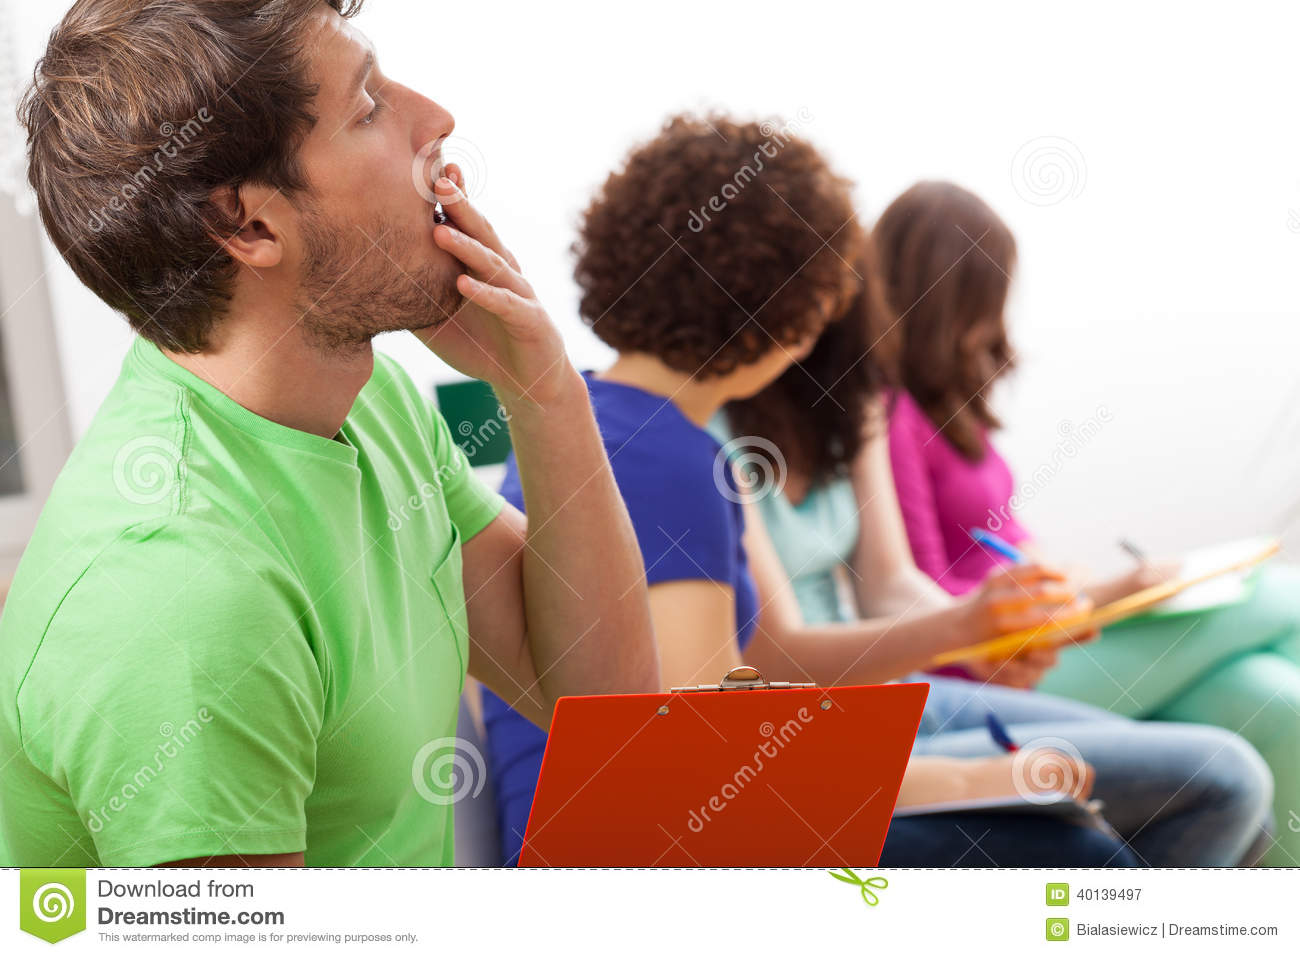 Yawning Student During Lecture Stock Photo - Image: 40139497